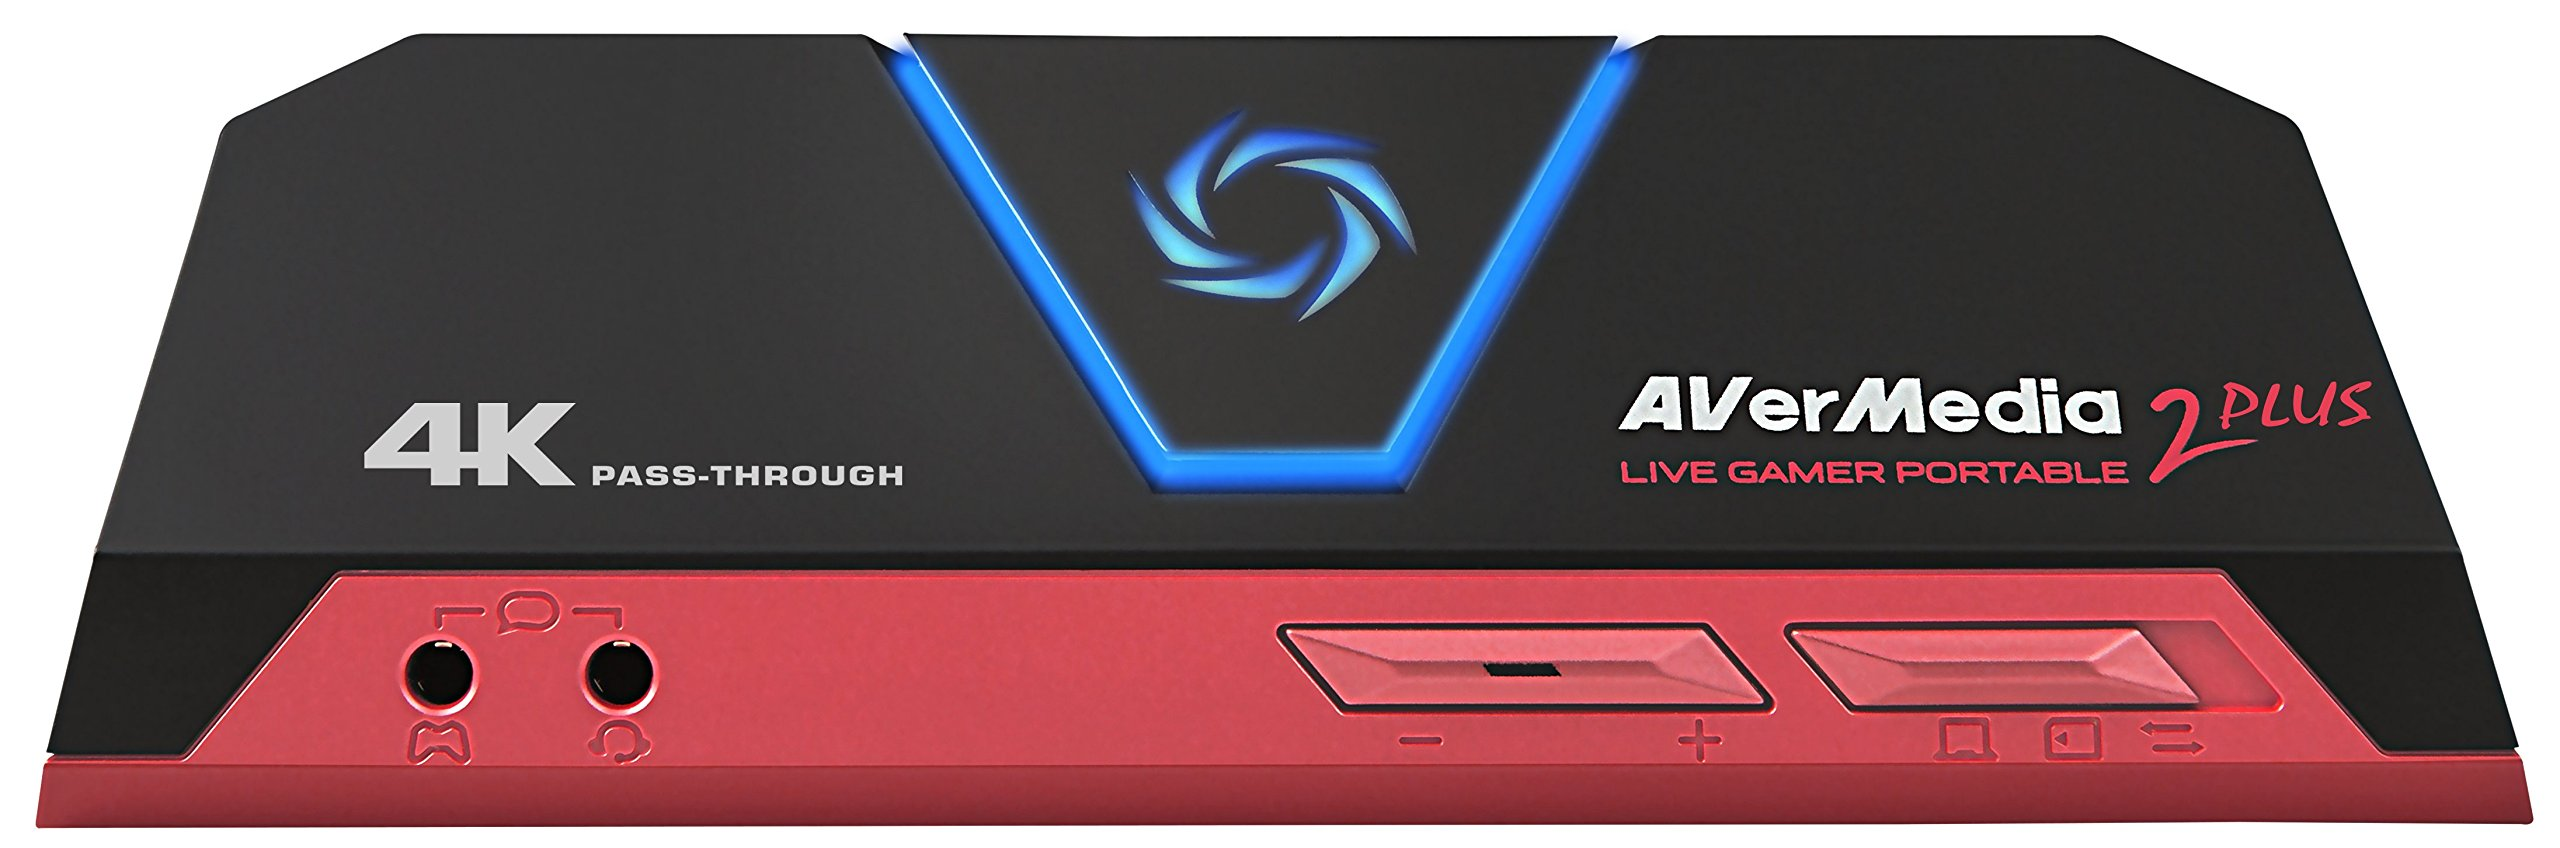 AVerMedia Live Gamer Portable 2 Plus, 4K Pass-Through, 4K Full HD 1080p60 USB Game Capture, Ultra Low Latency, Record, Stream, Plug & Play, Party Chat for Xbox, Playstation, Nintendo Switch (GC513) by AVerMedia